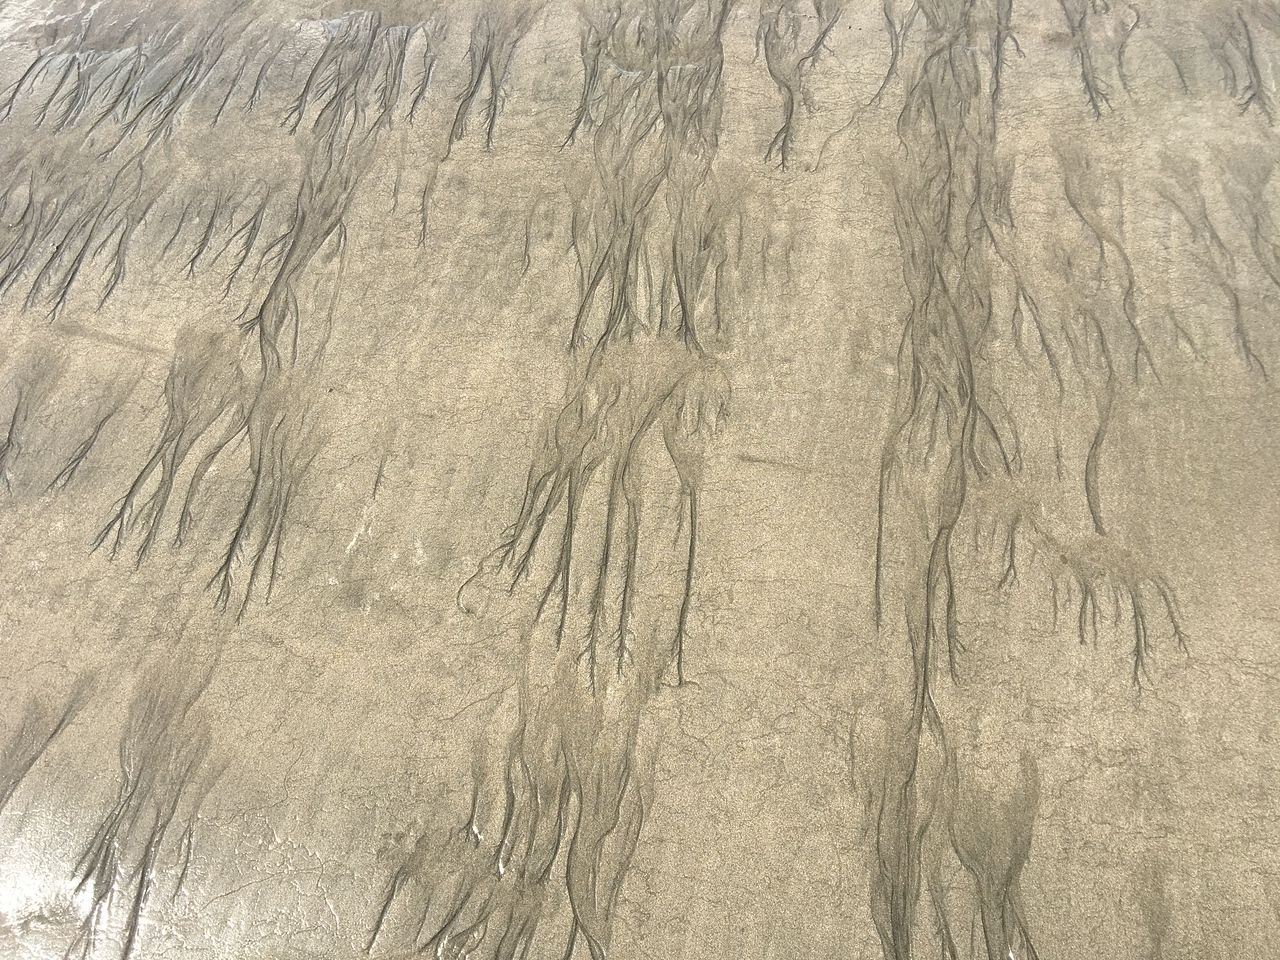 Patterns on the Sand